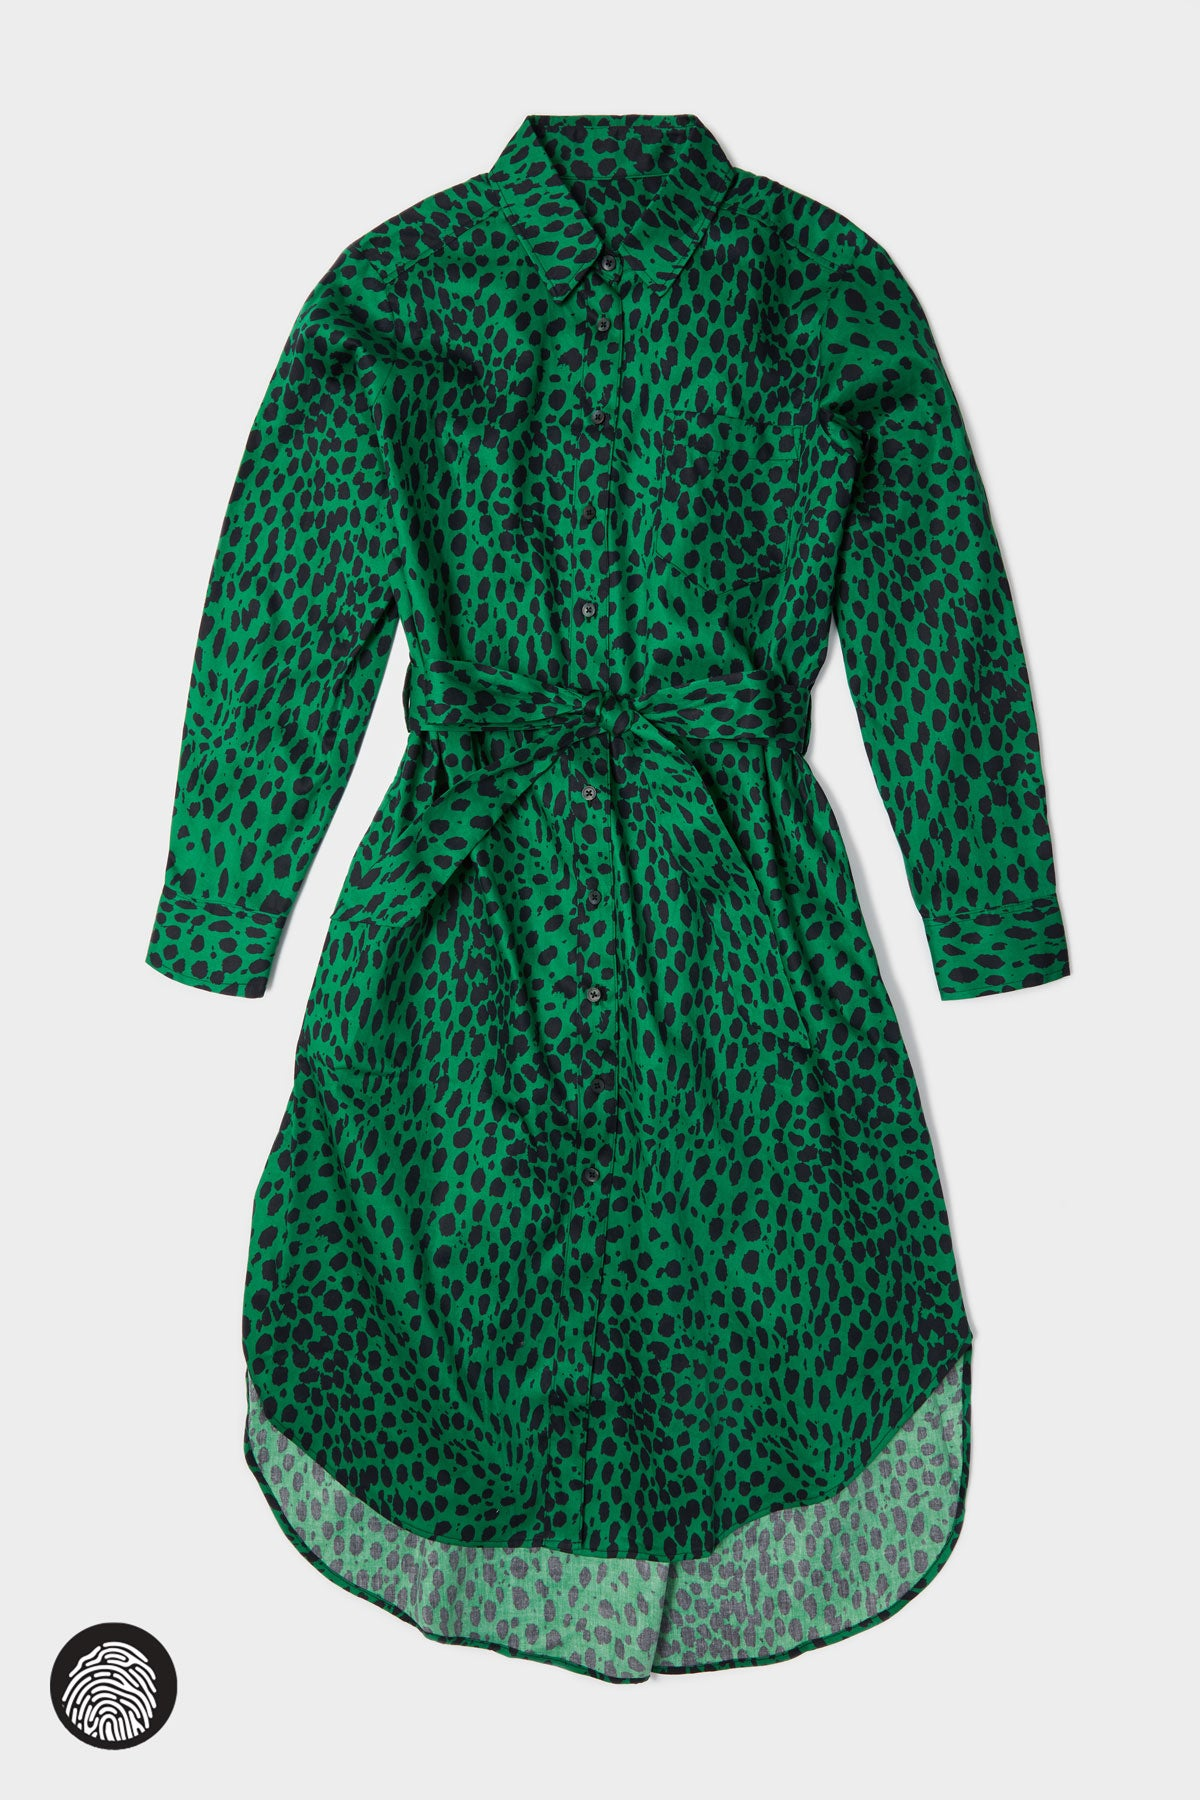 SHIRTDRESS  / LEOPARD PRINT GREEN | Megan Renee